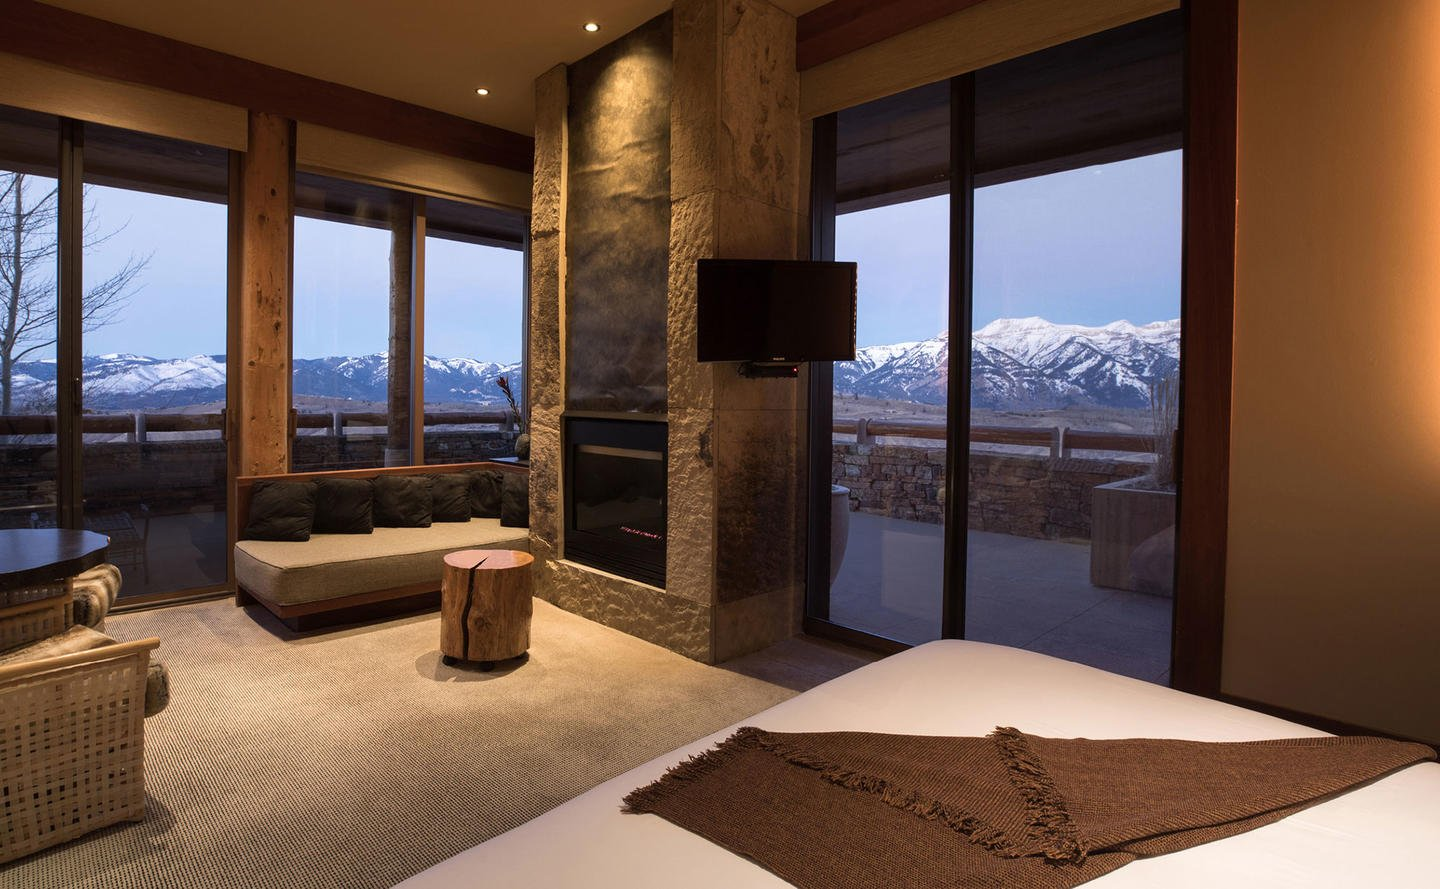 Shoshone Suite - Amangani, Wyoming, USA